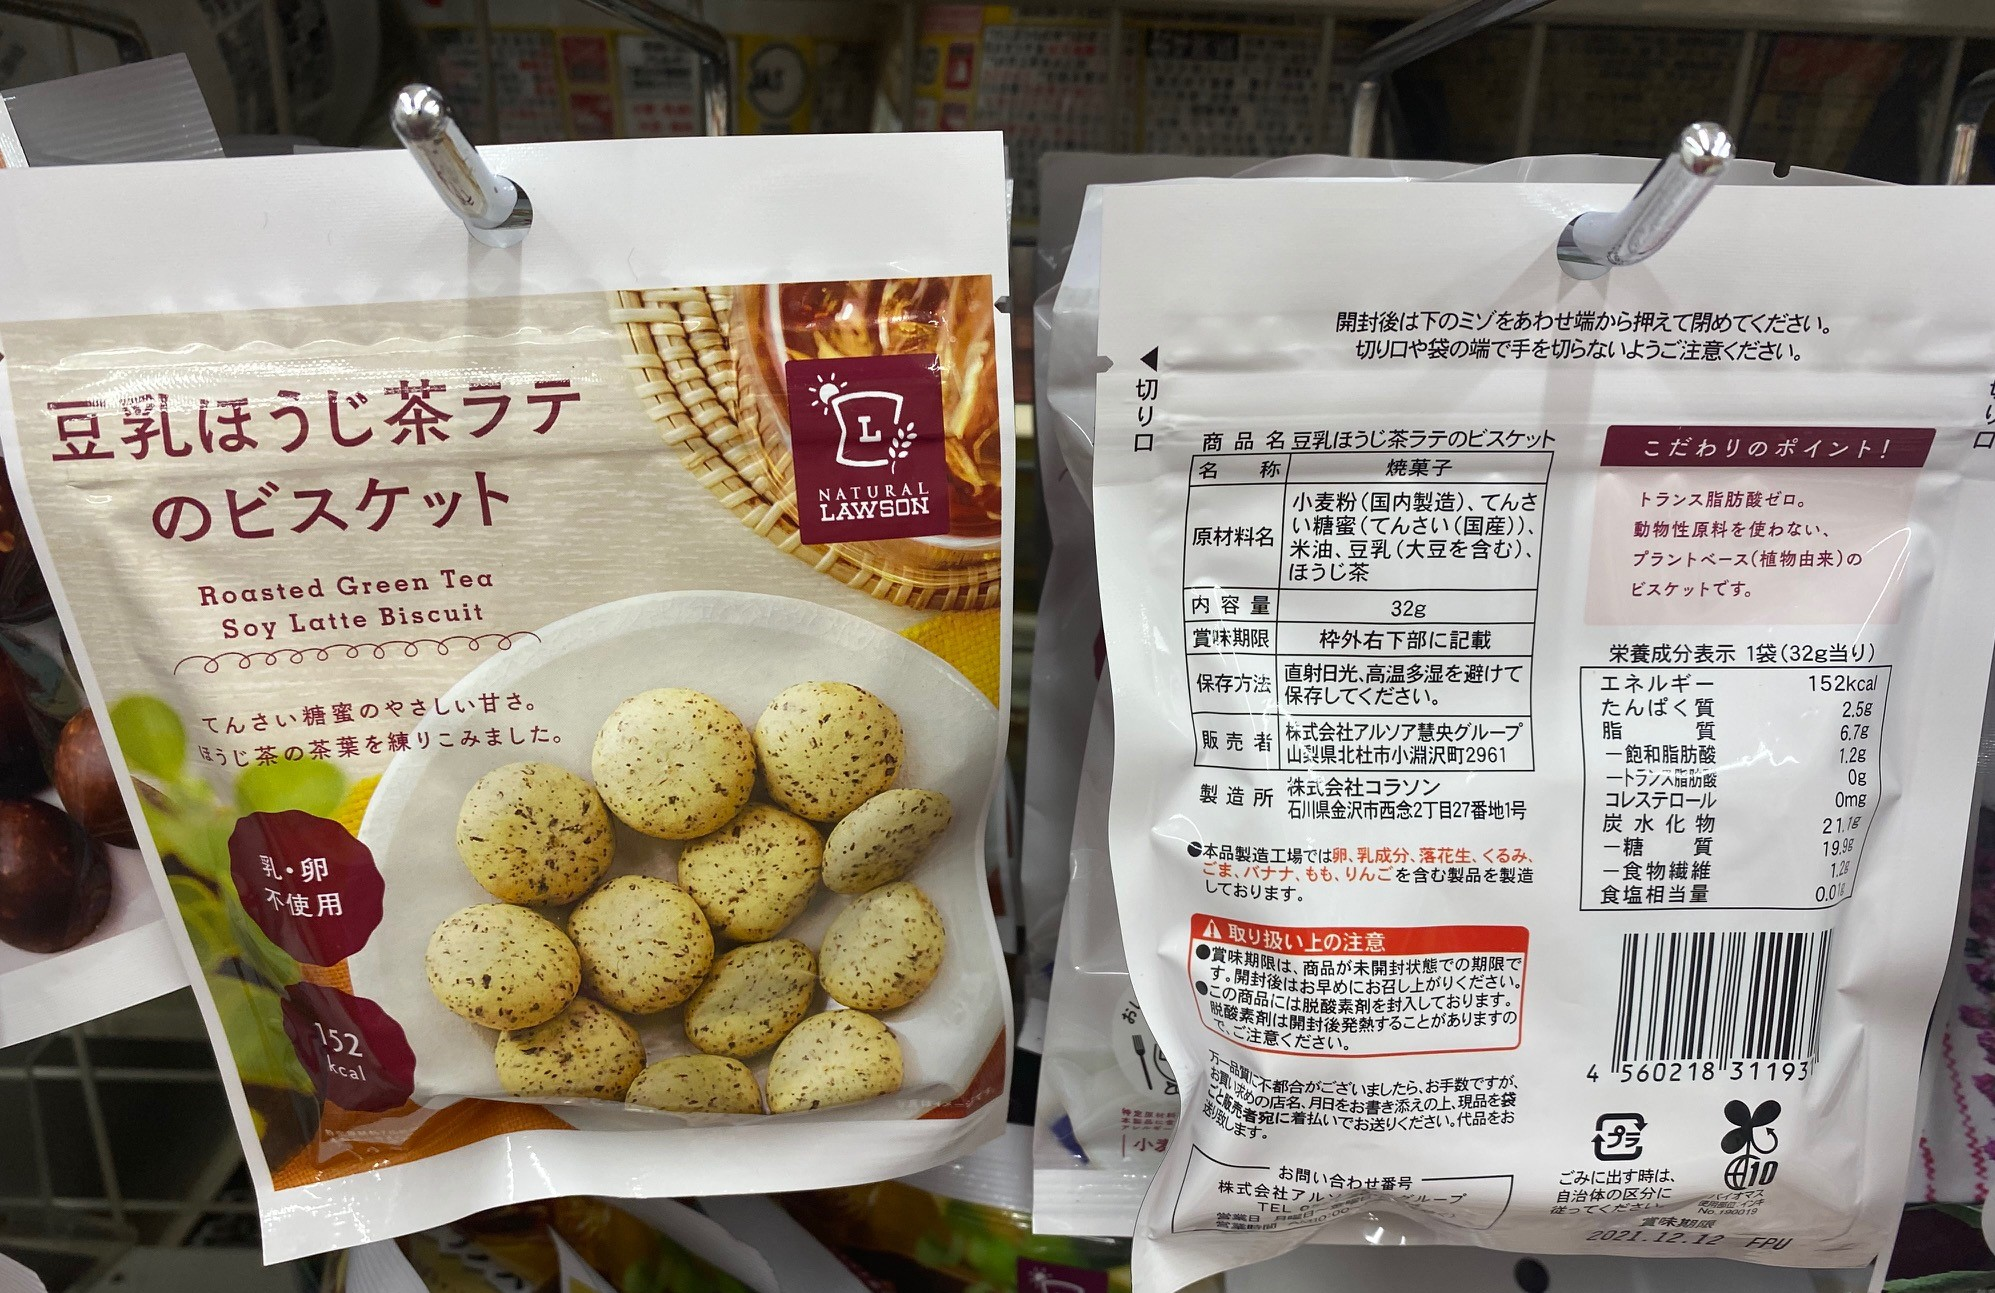 Lawson and Natural Lawson Roasted Green Tea Soy Latte Biscuits